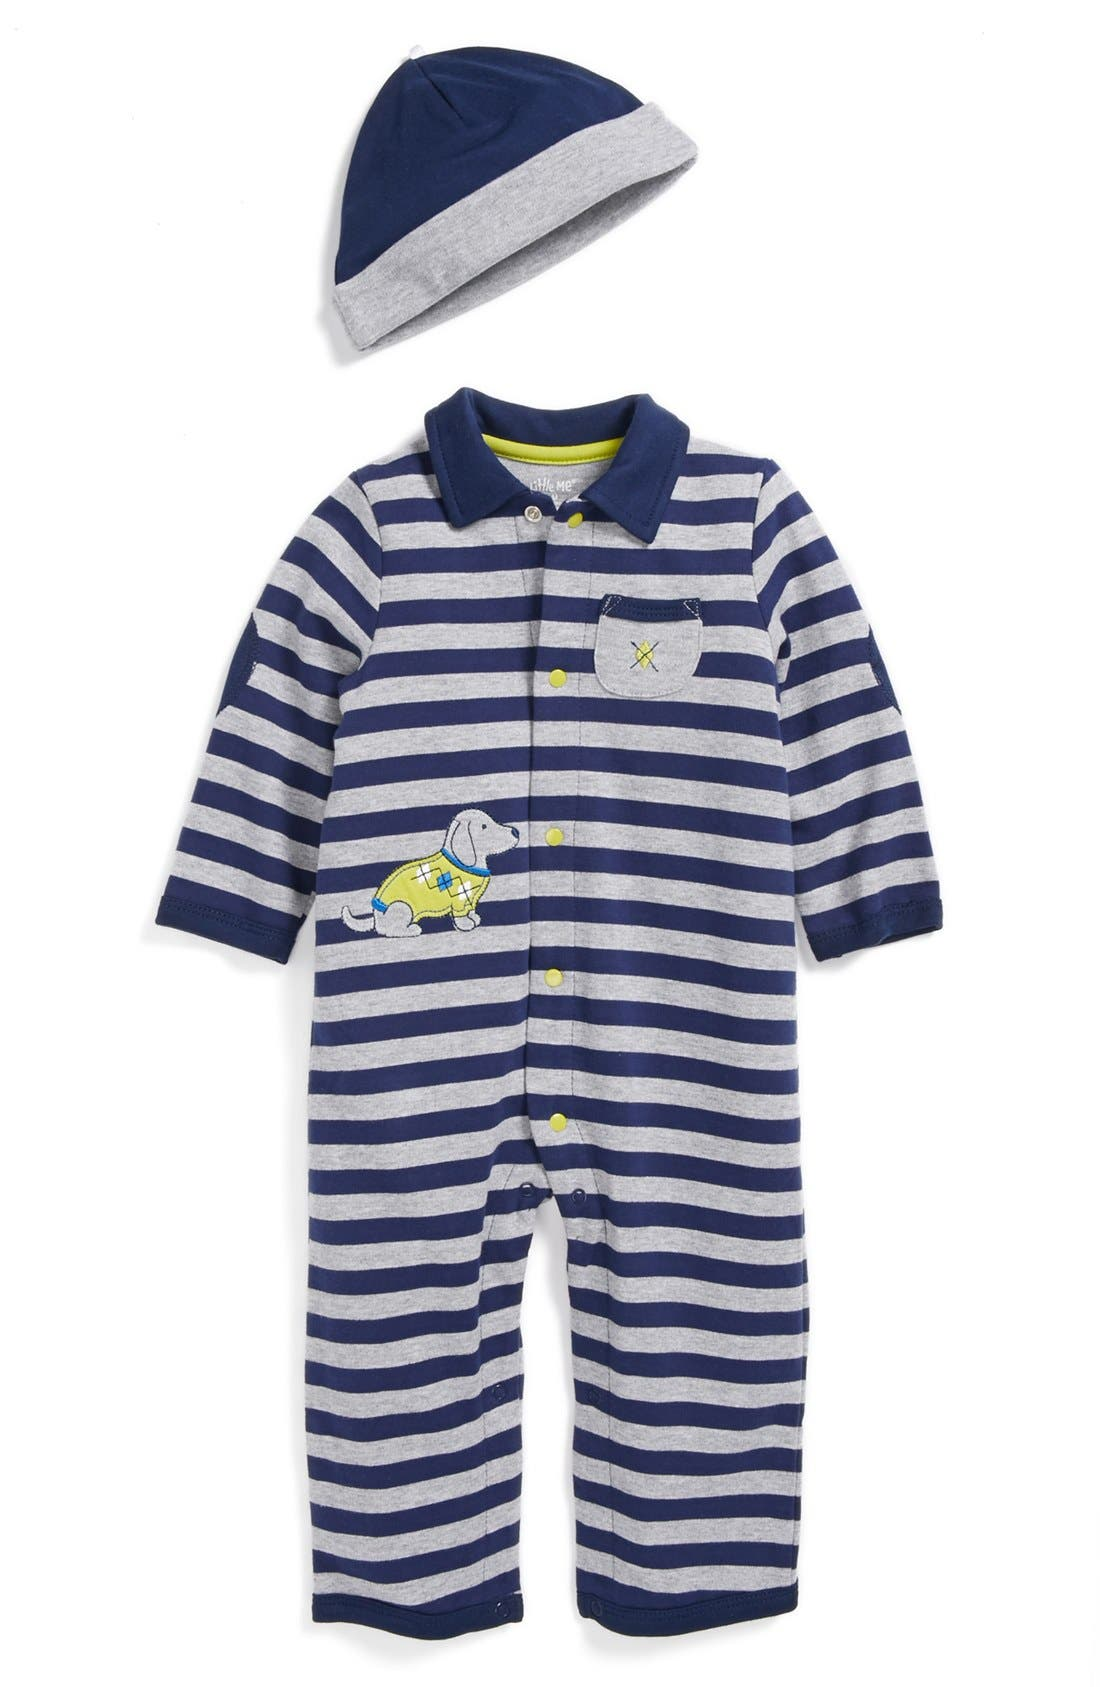 Main Image - Little Me Dachsund Romper & Hat (Baby Boys)